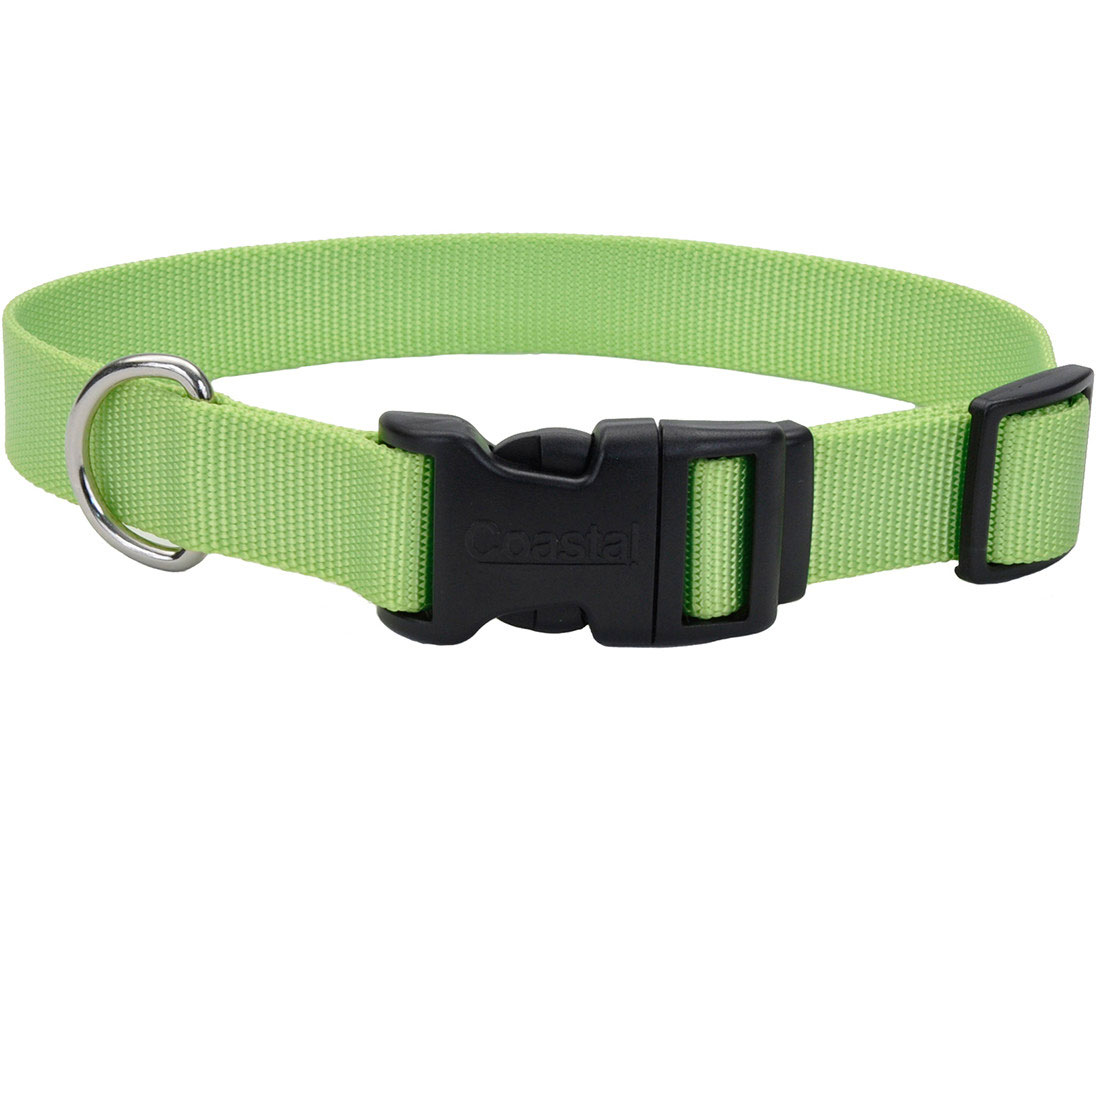 Coastal Adjustable Collar with Plastic Buckle for Dogs, Lime Image